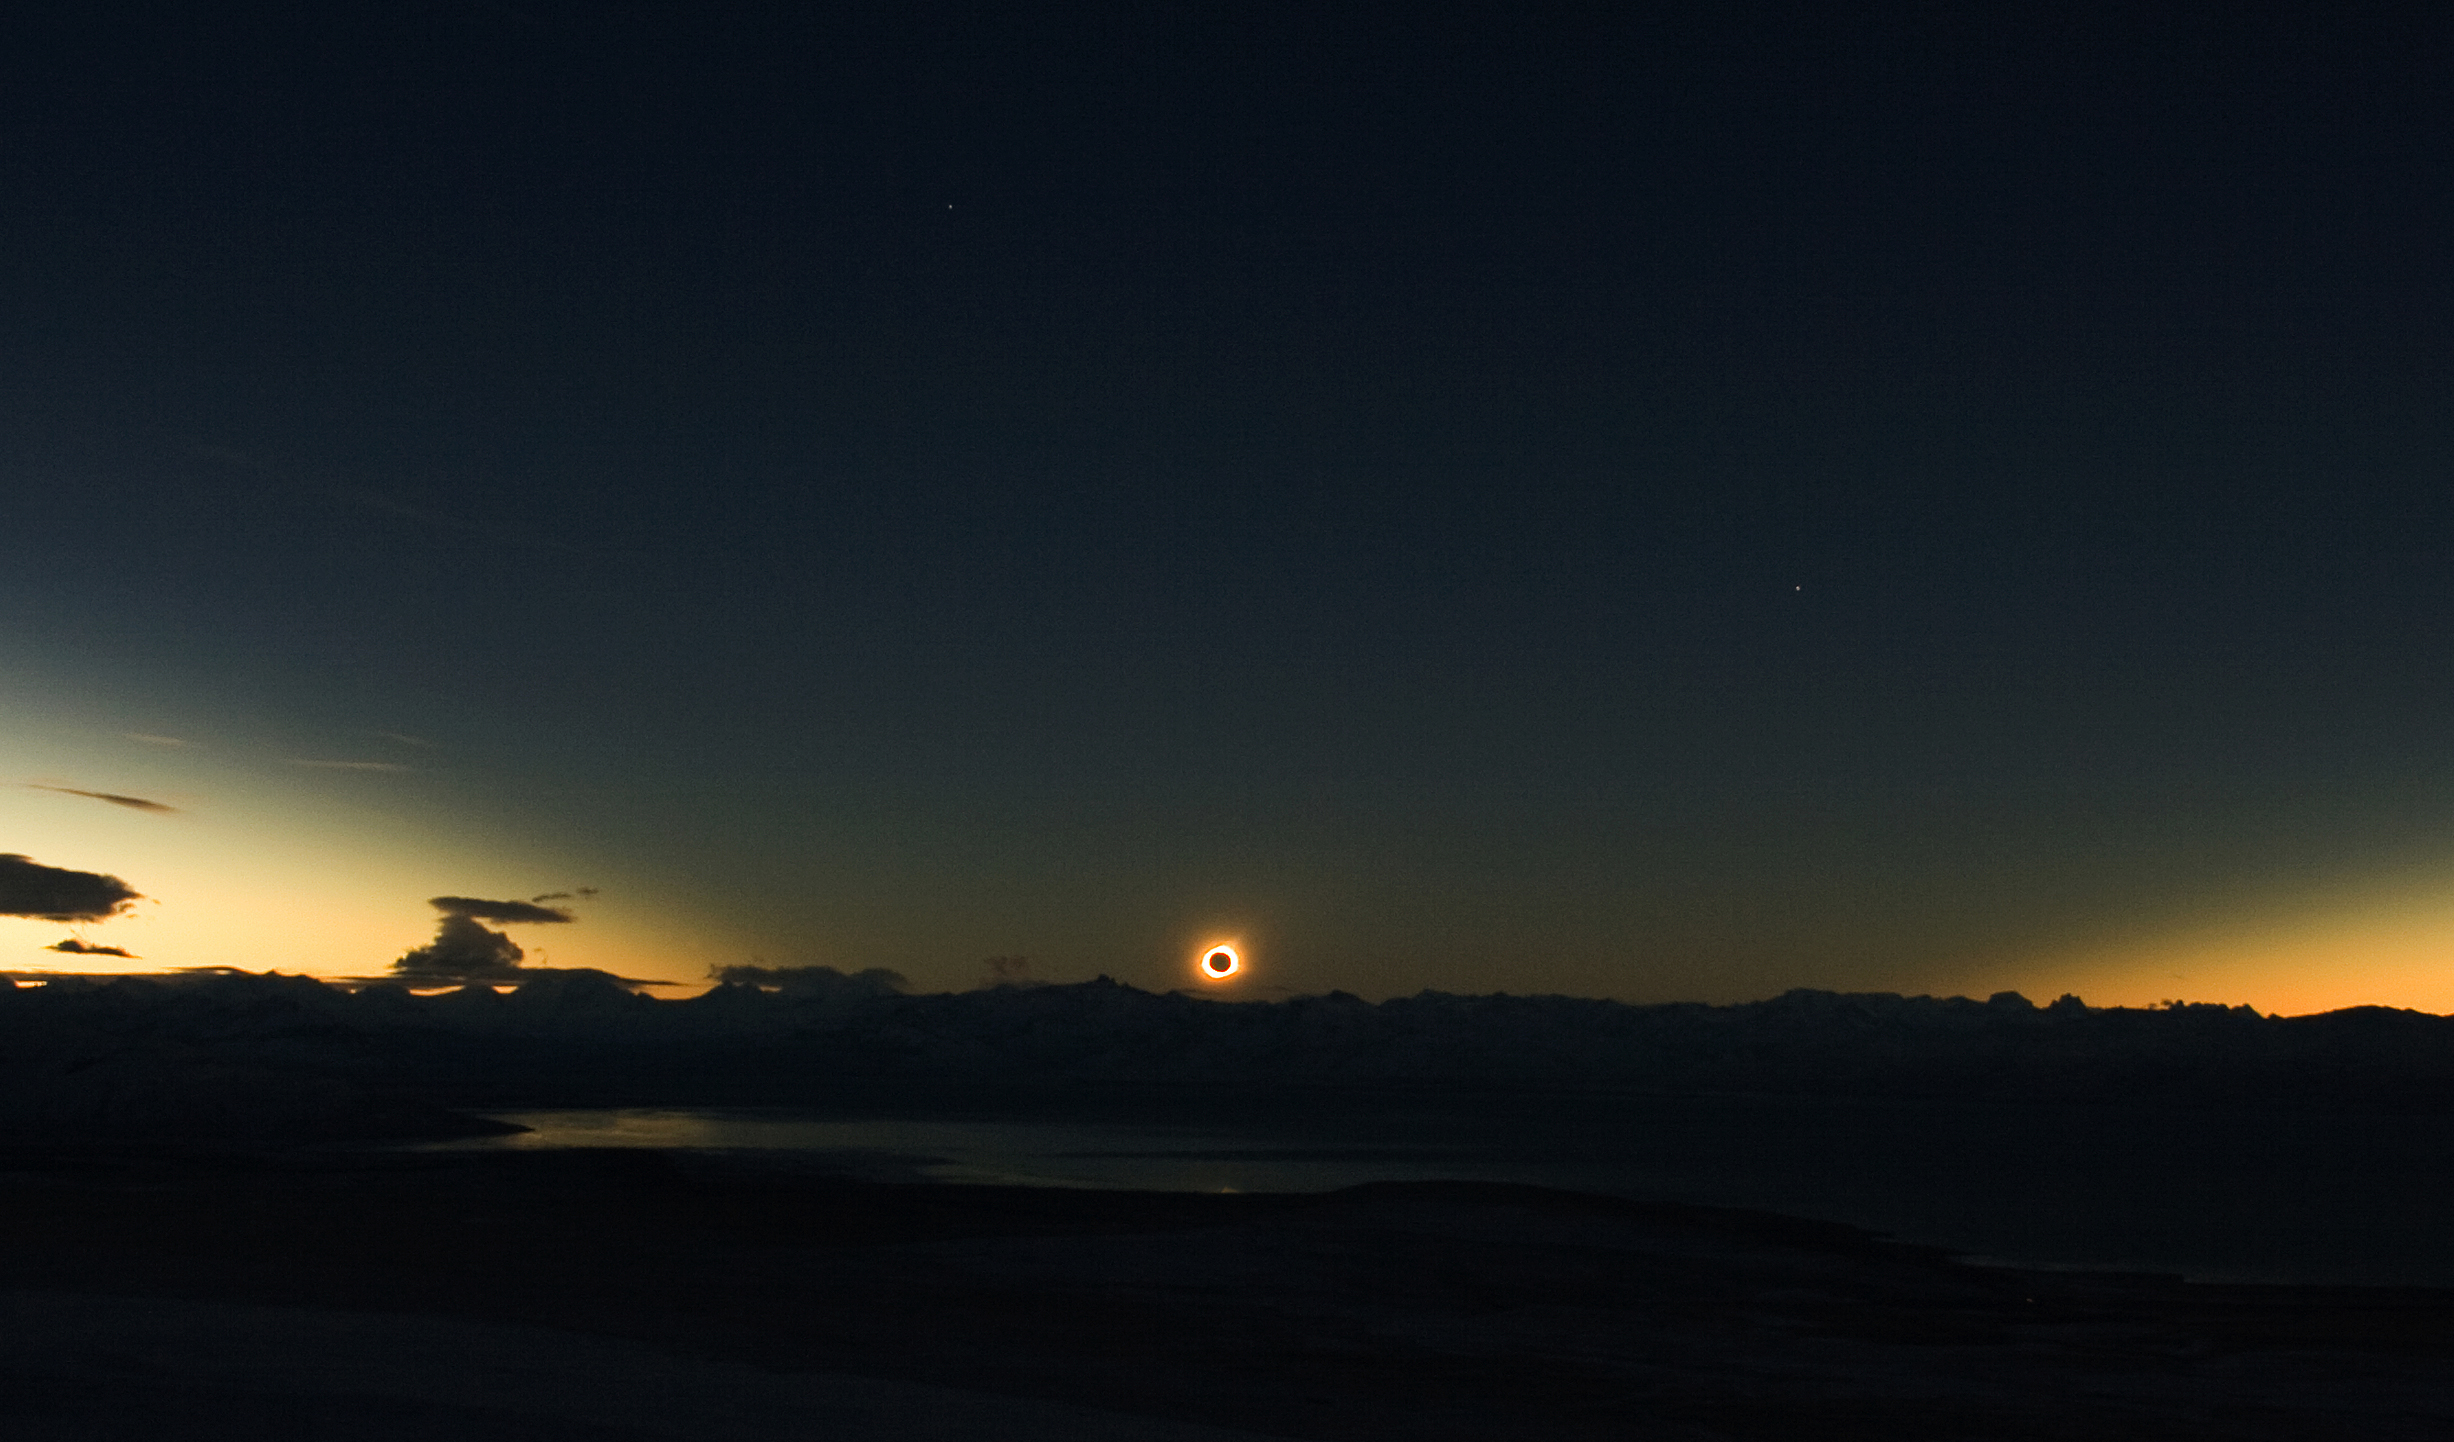 SUNSET TOTAL SOLAR ECLIPSE AT EL CALAFATE, ARGENTINA ON JULY 11, 2010. © 2010 LUKAS GORNISIEWICZ & DAVID MAKEPEACE